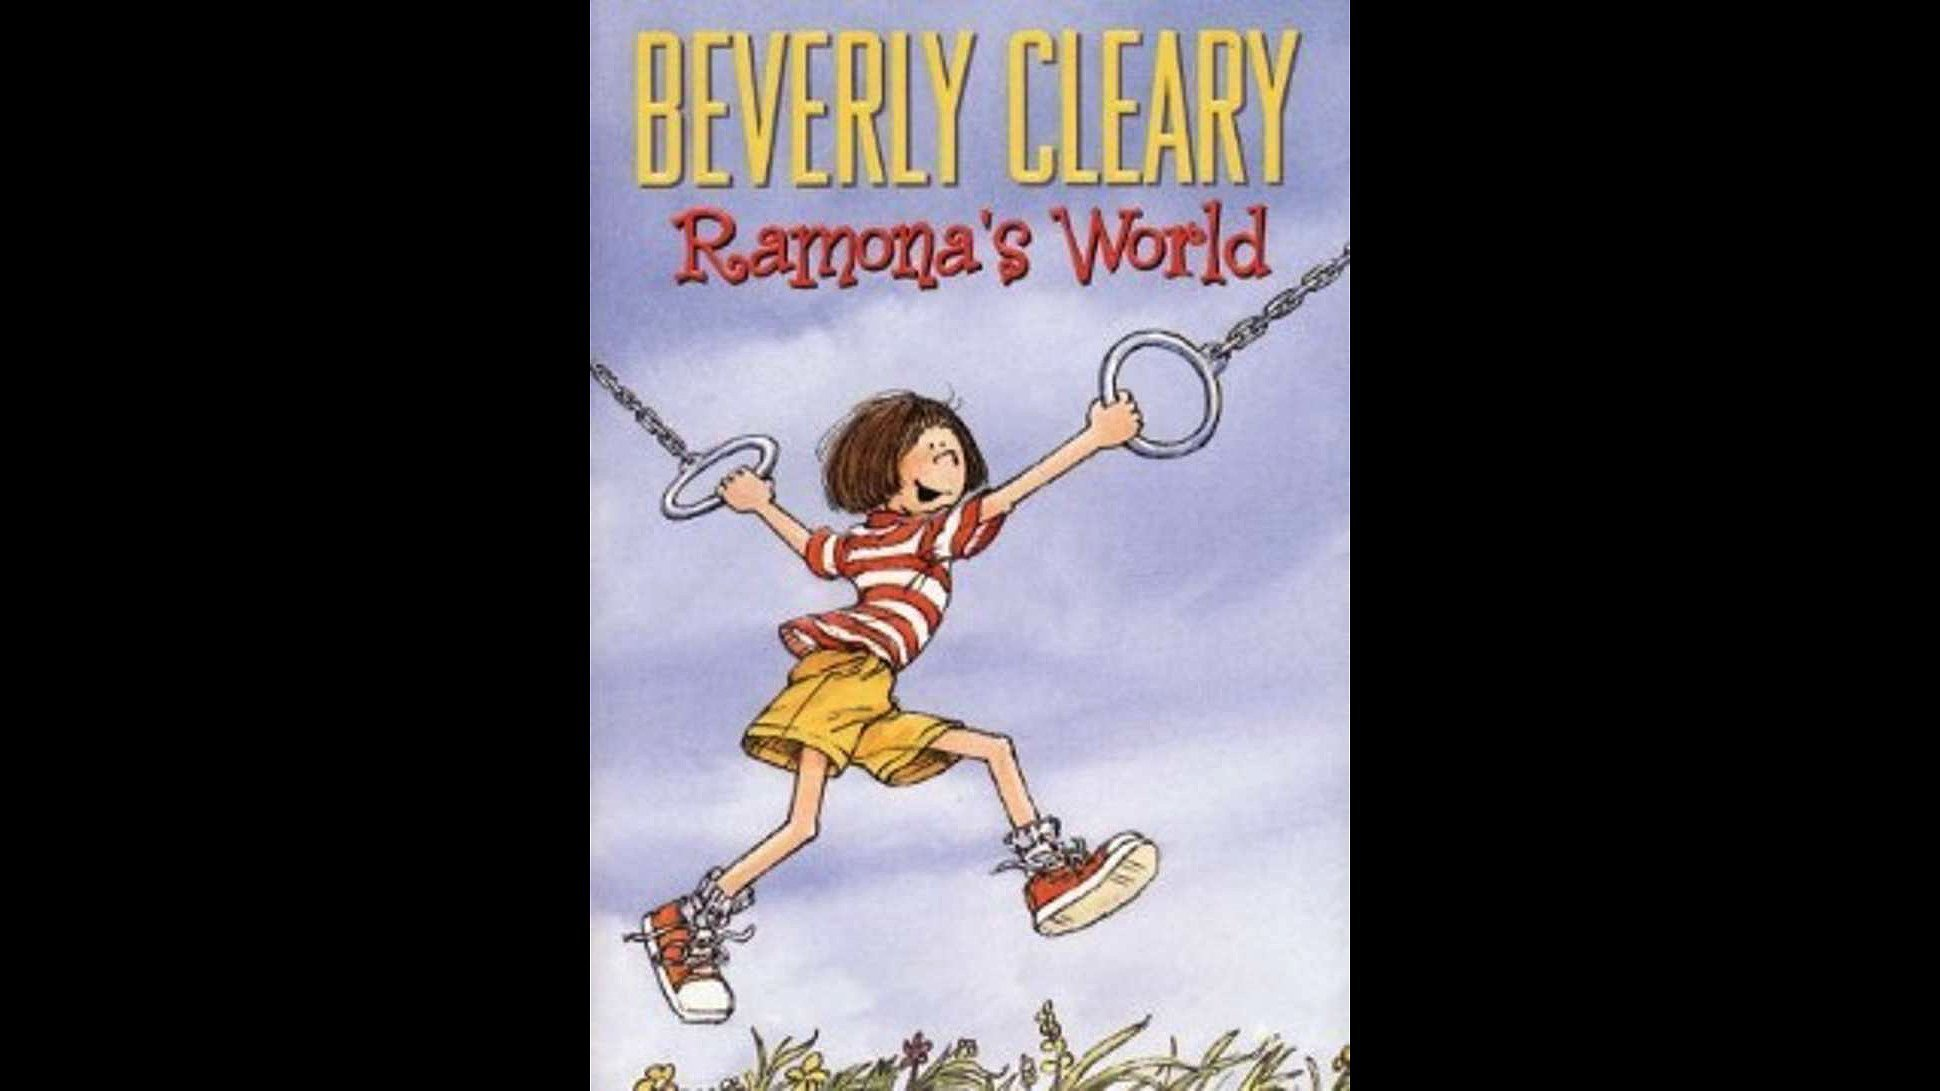 Beverly Cleary celebrates her 100th birthday.